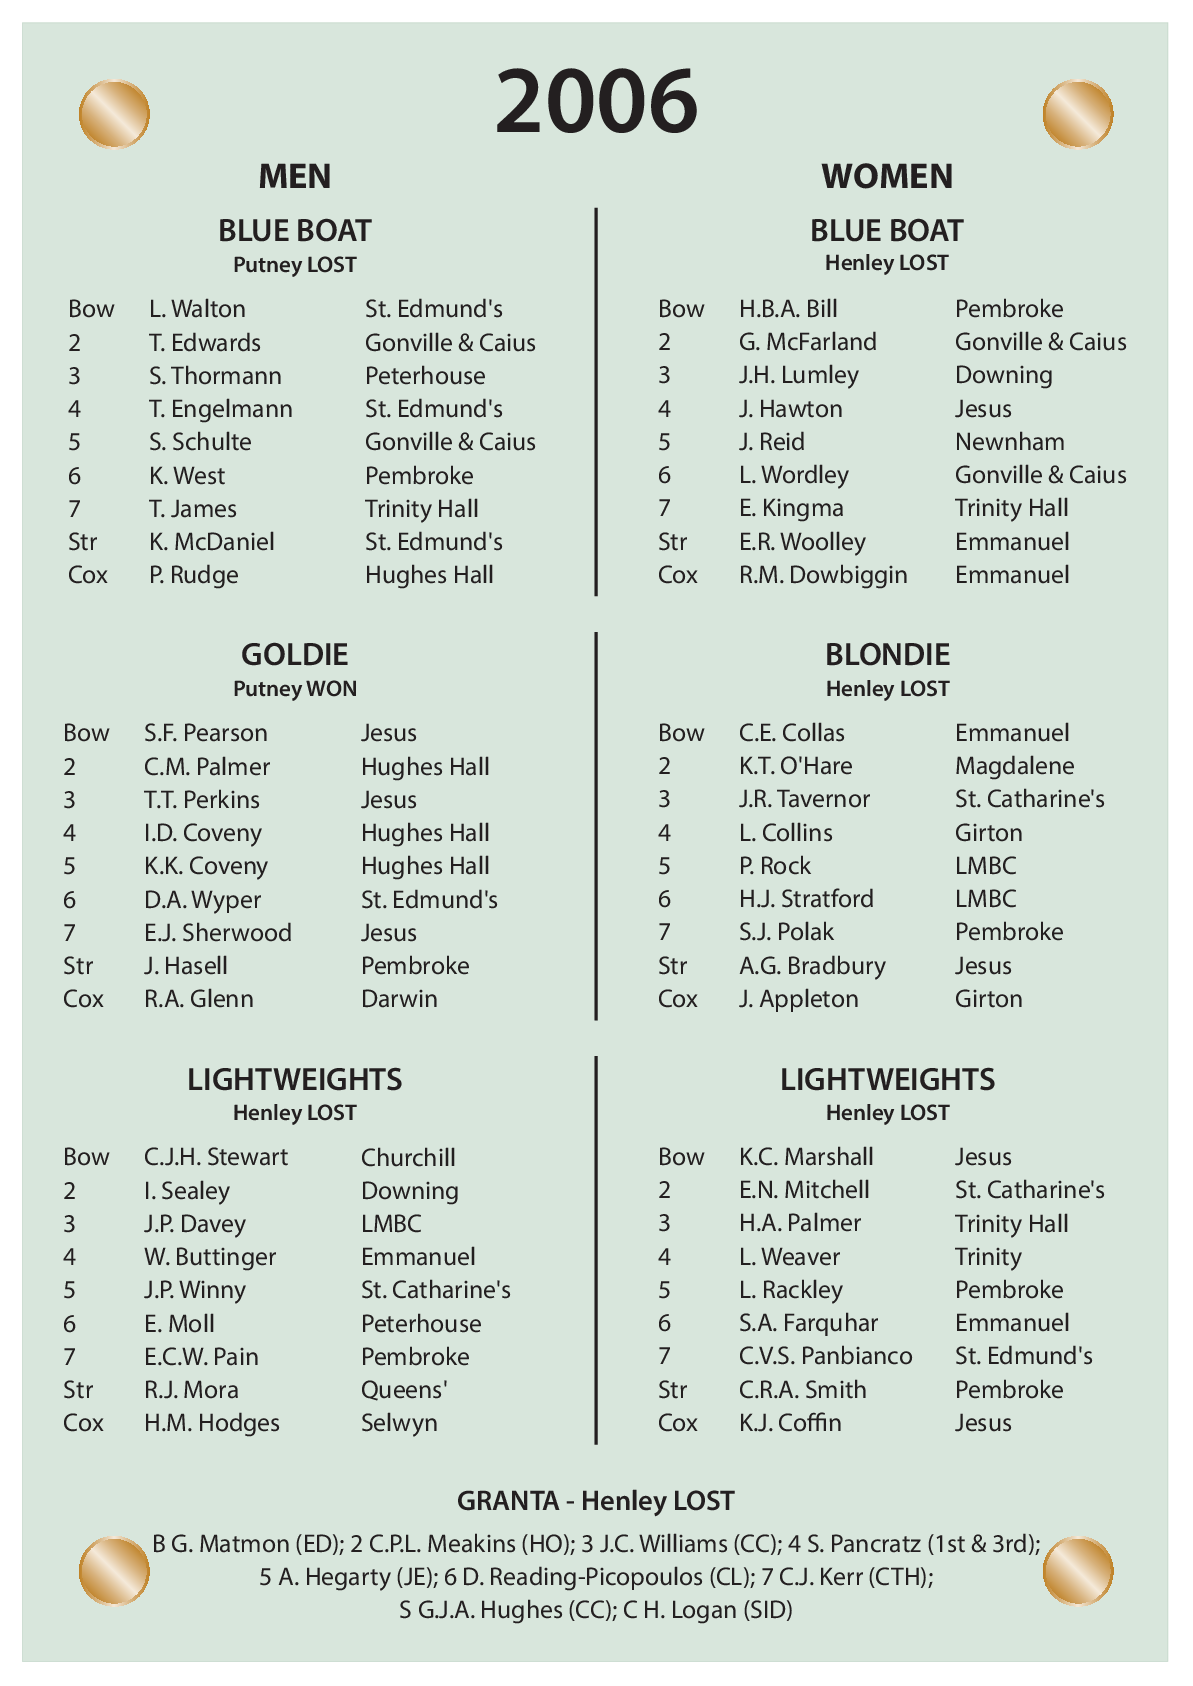 CUBC Crews And Results - 2006